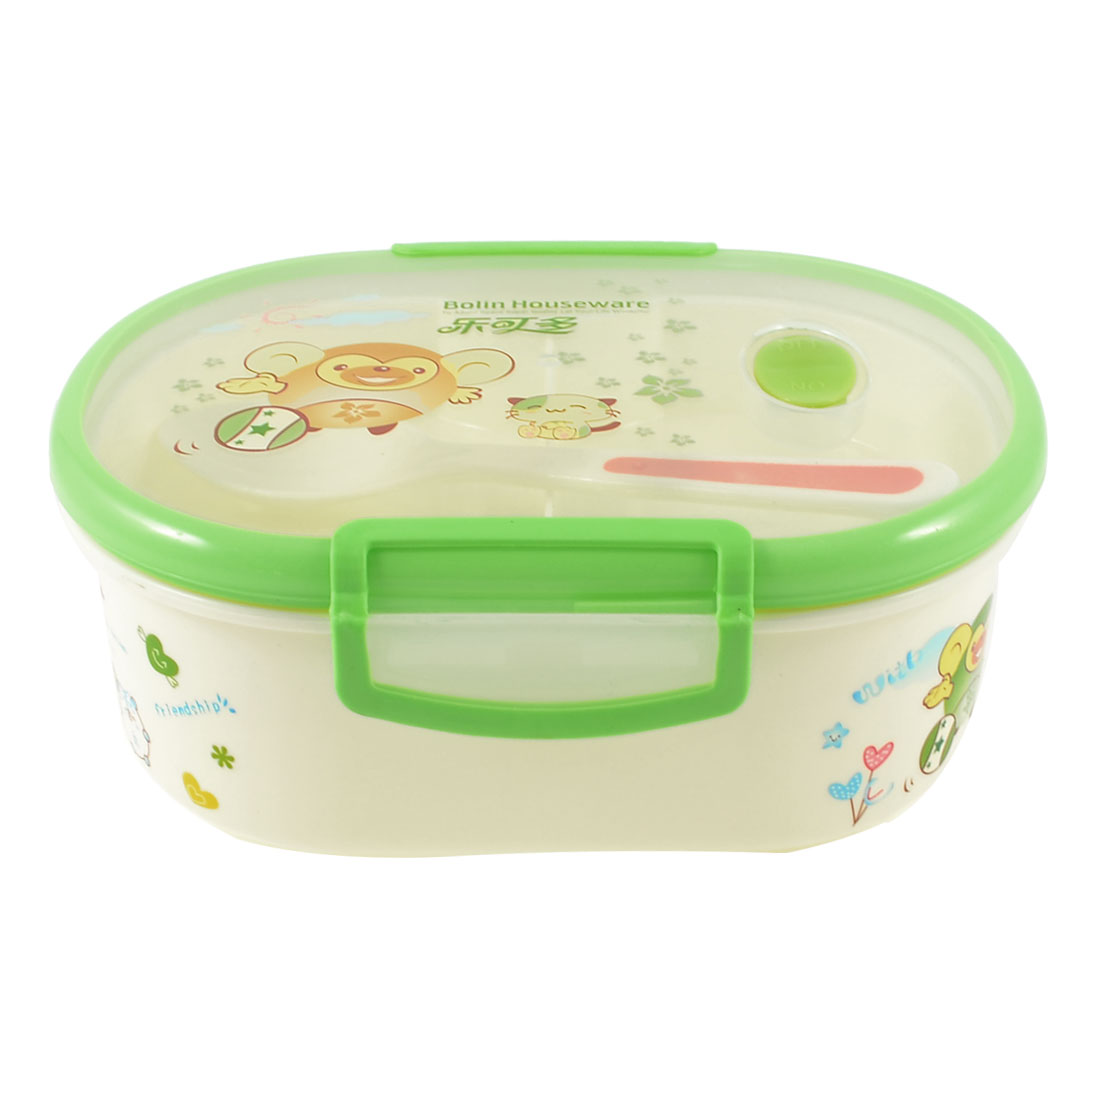 Camping Hole Design 3 Compartments Oval Dinner Case Lunch Box Pale Green